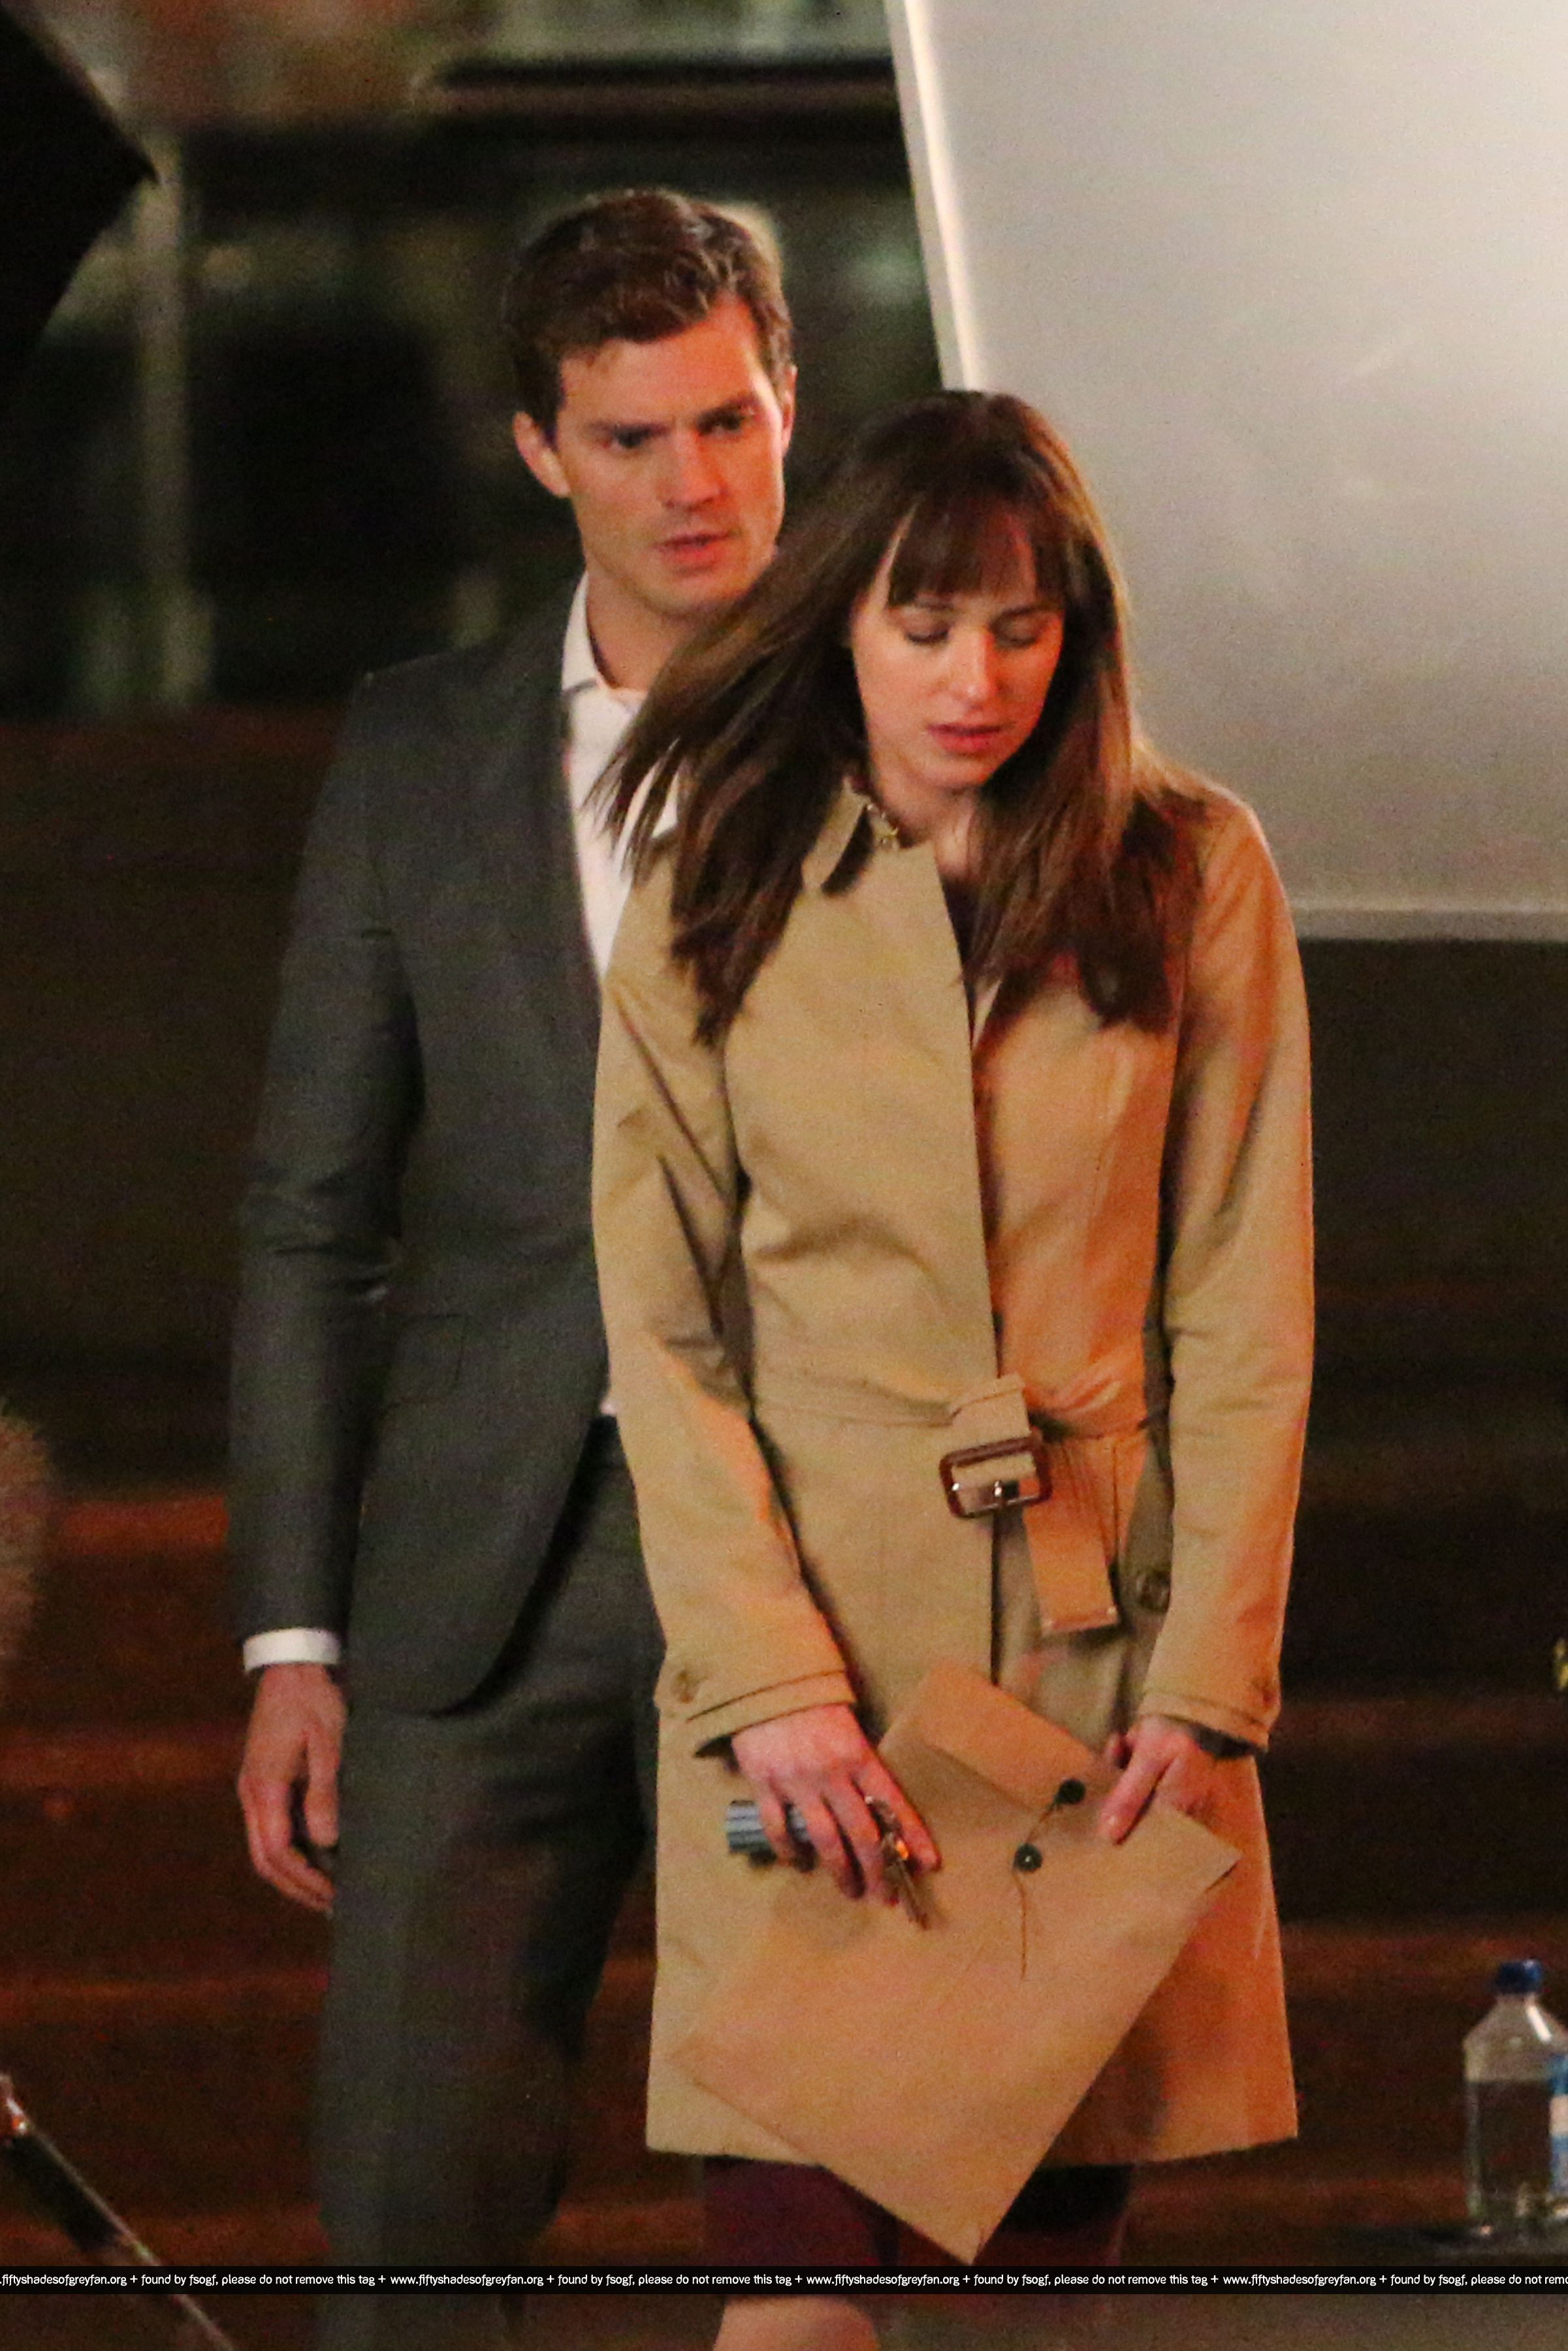 On set december 8th jamie dornan dakota johnson photo for Movie the fifty shades of grey